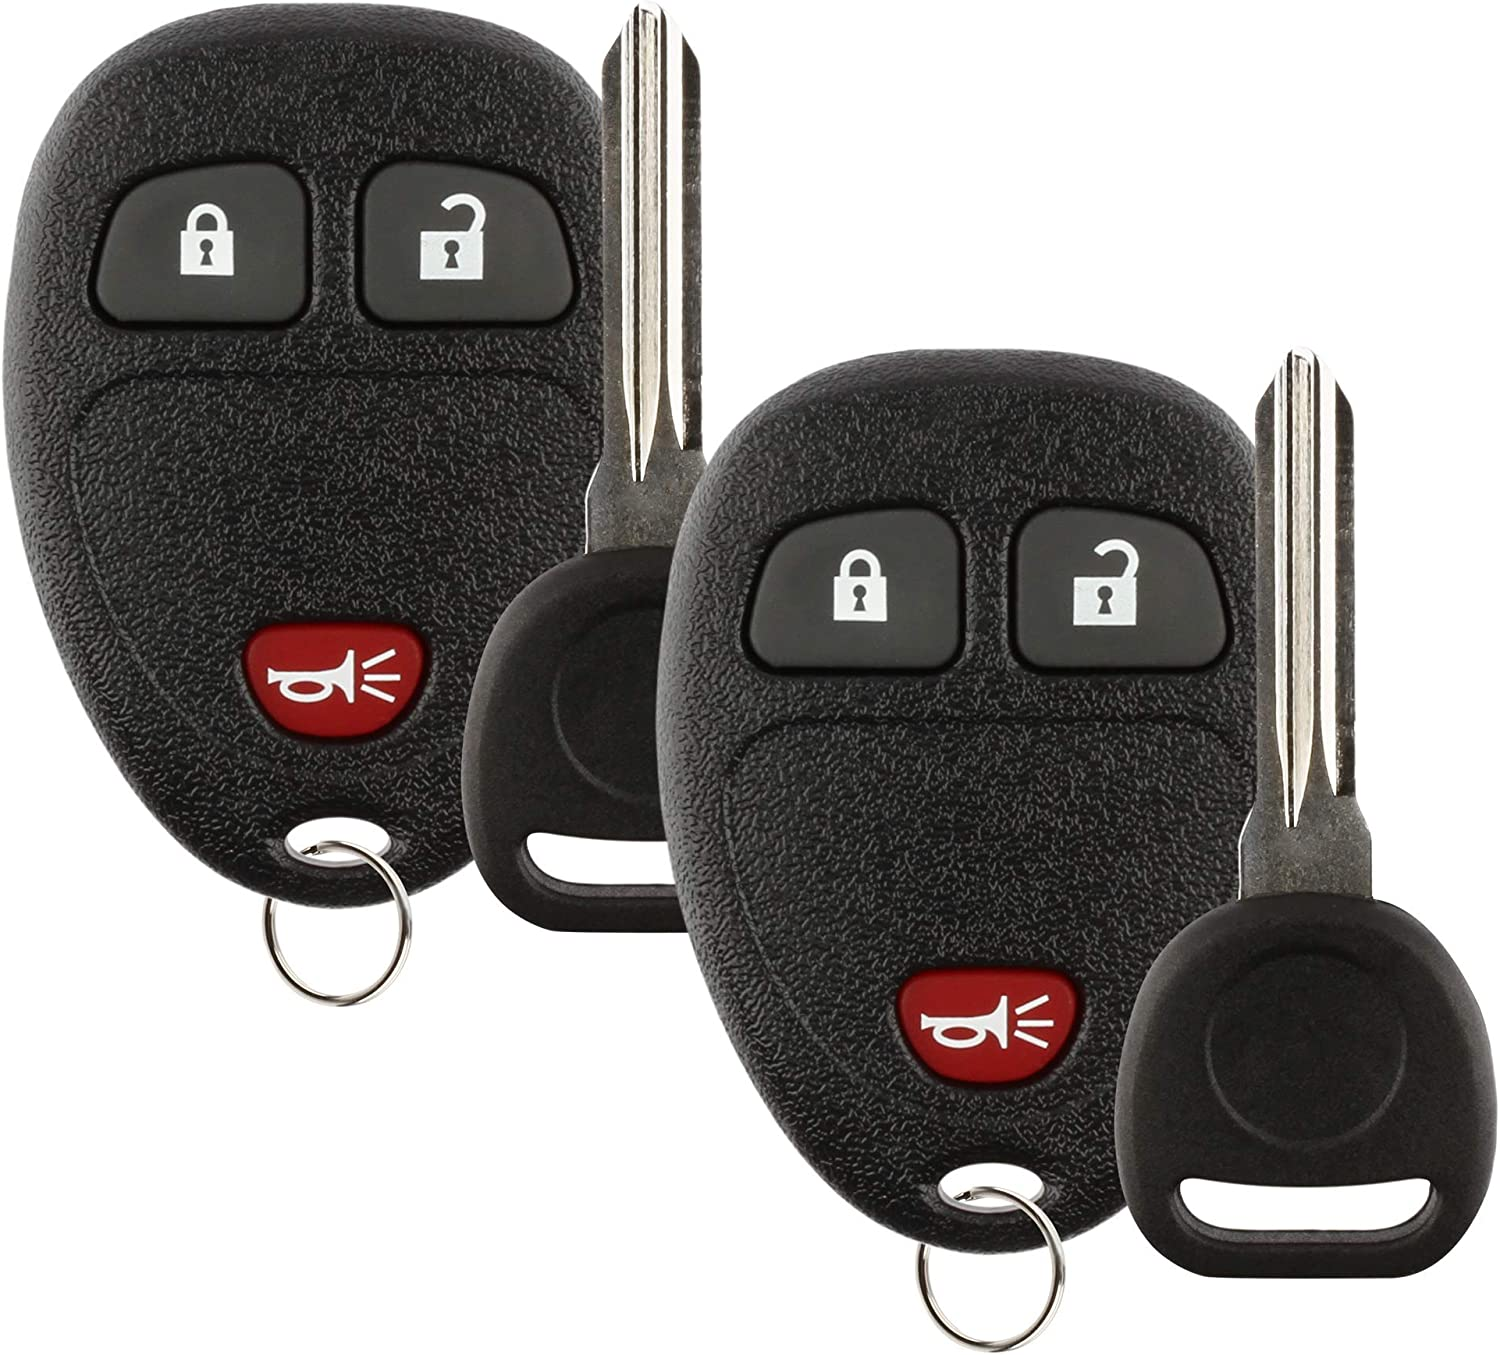 Discount Keyless Replacement 4 Button Automotive Keyless Entry Remote Control Transmitter 15913421 and a Replacement ID 46 Transponder Key